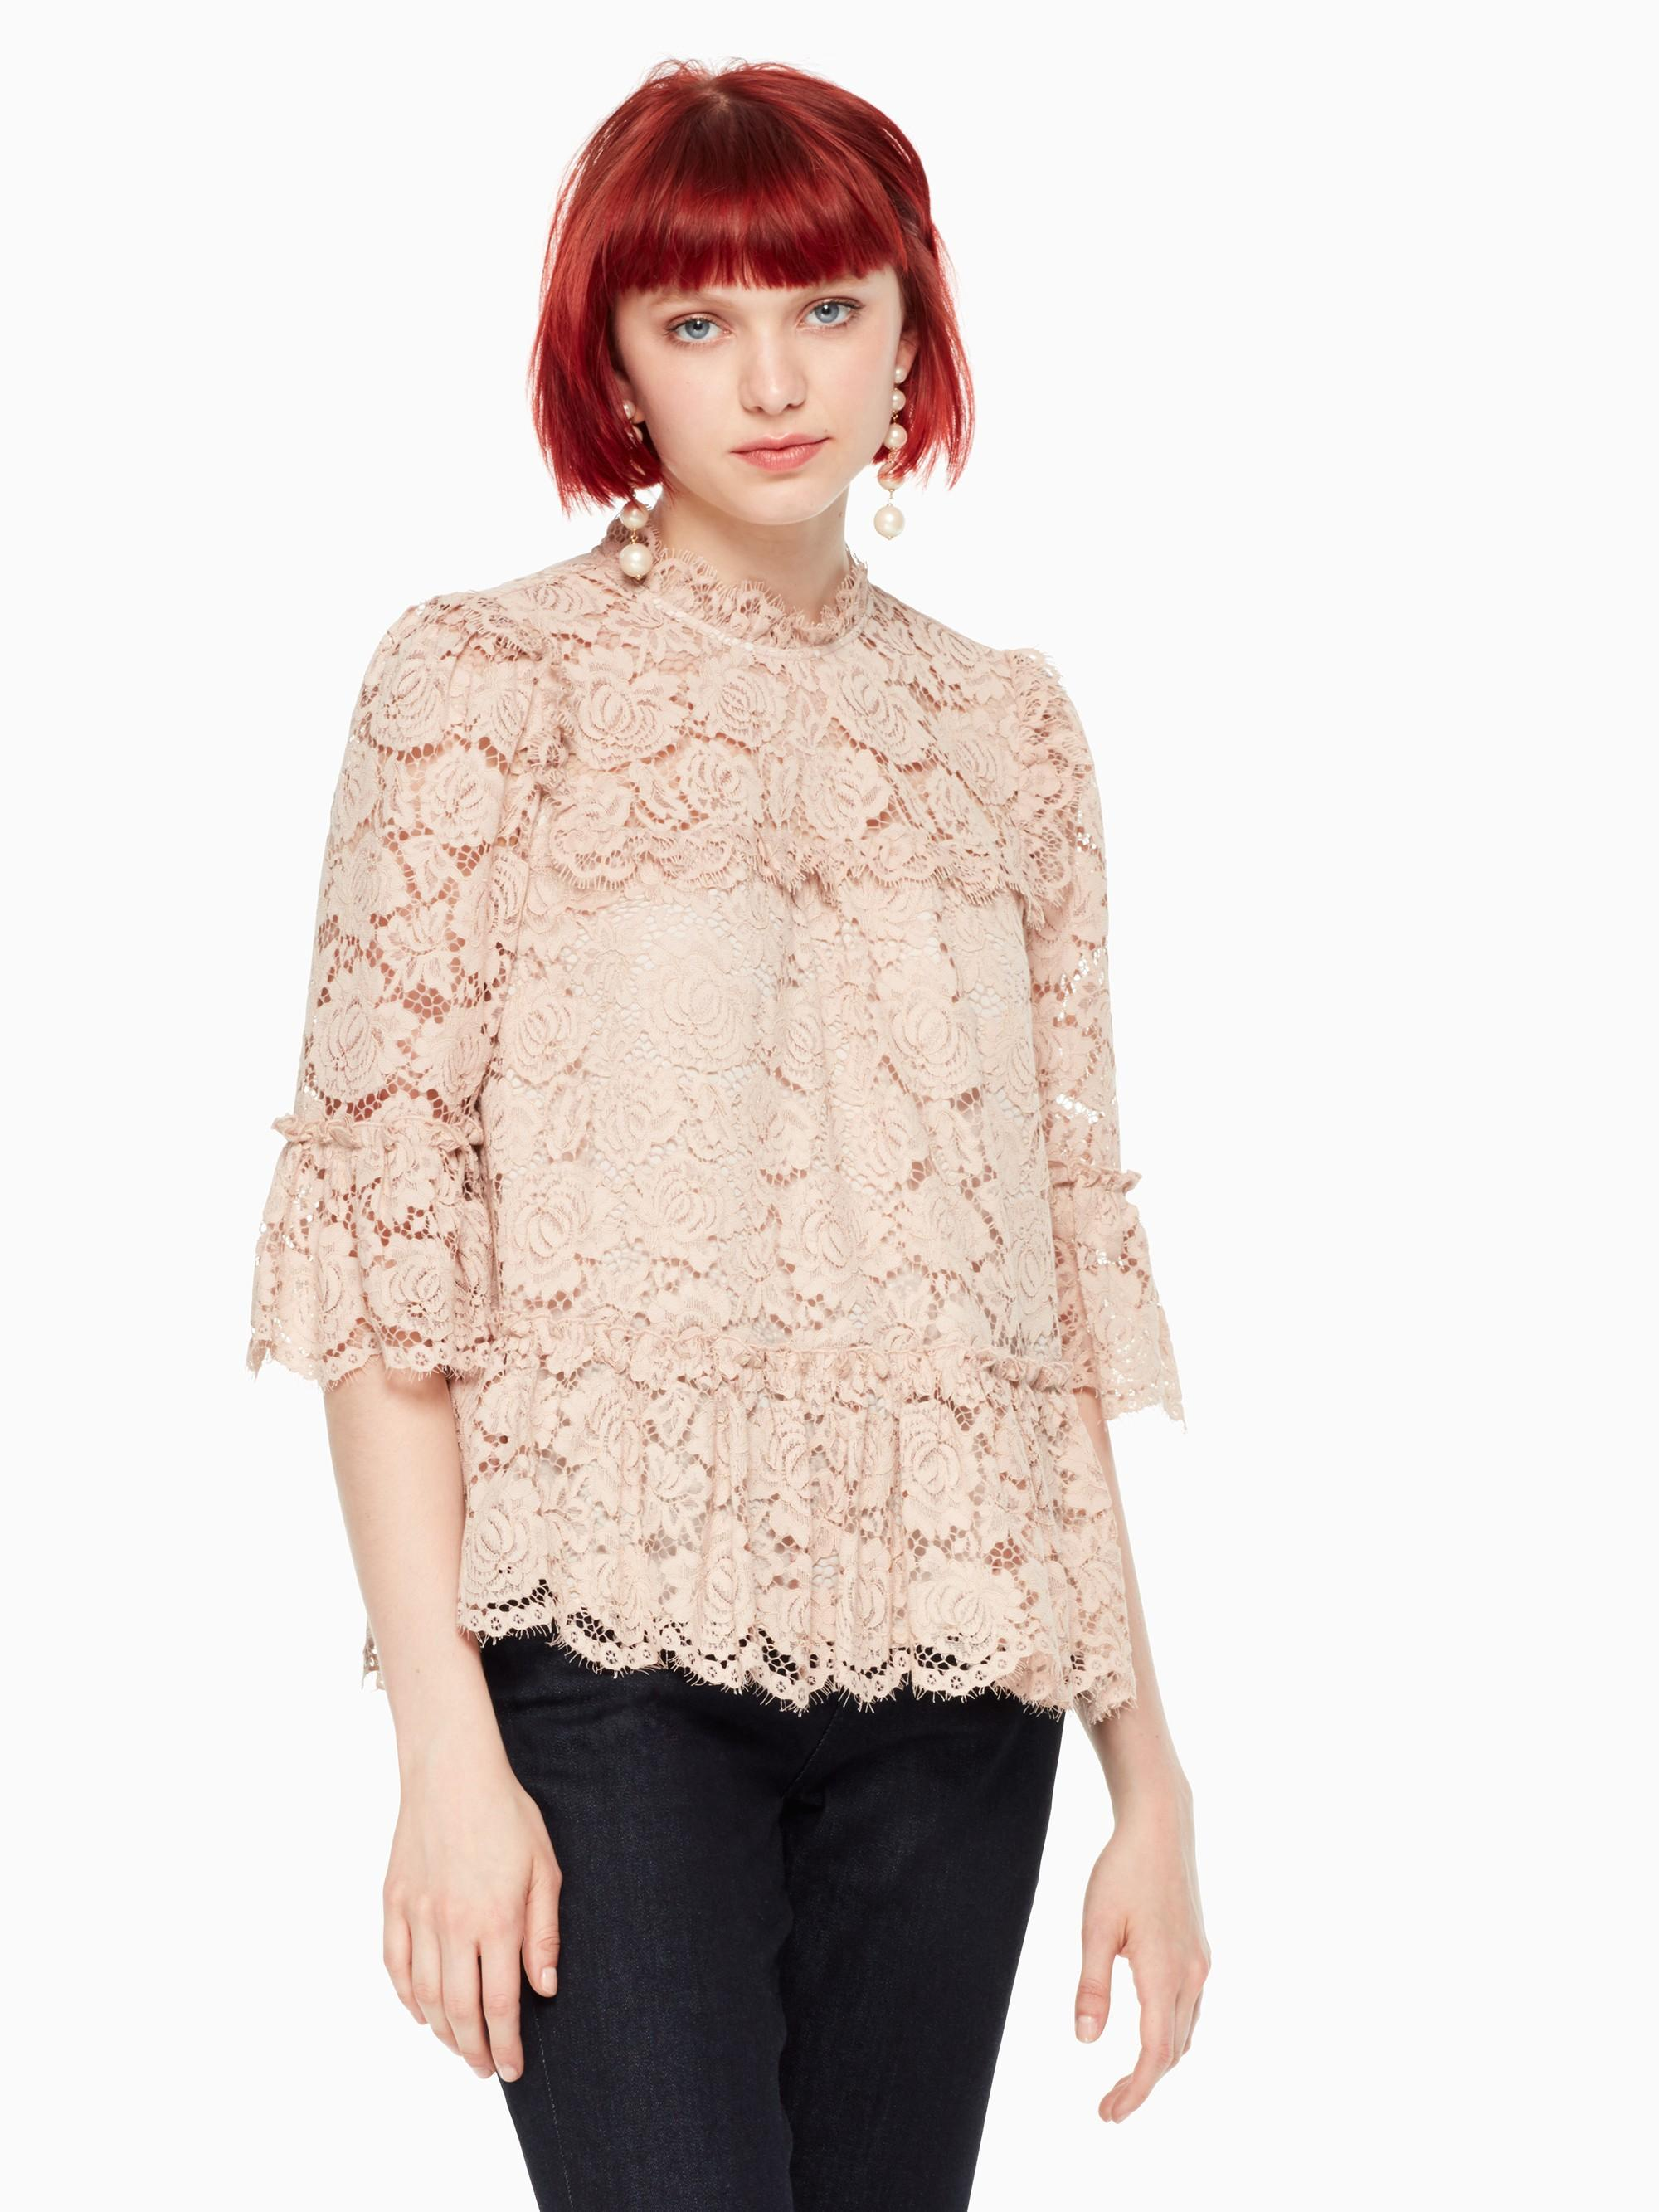 Kate Spade Poppy Lace Top In Amaretto